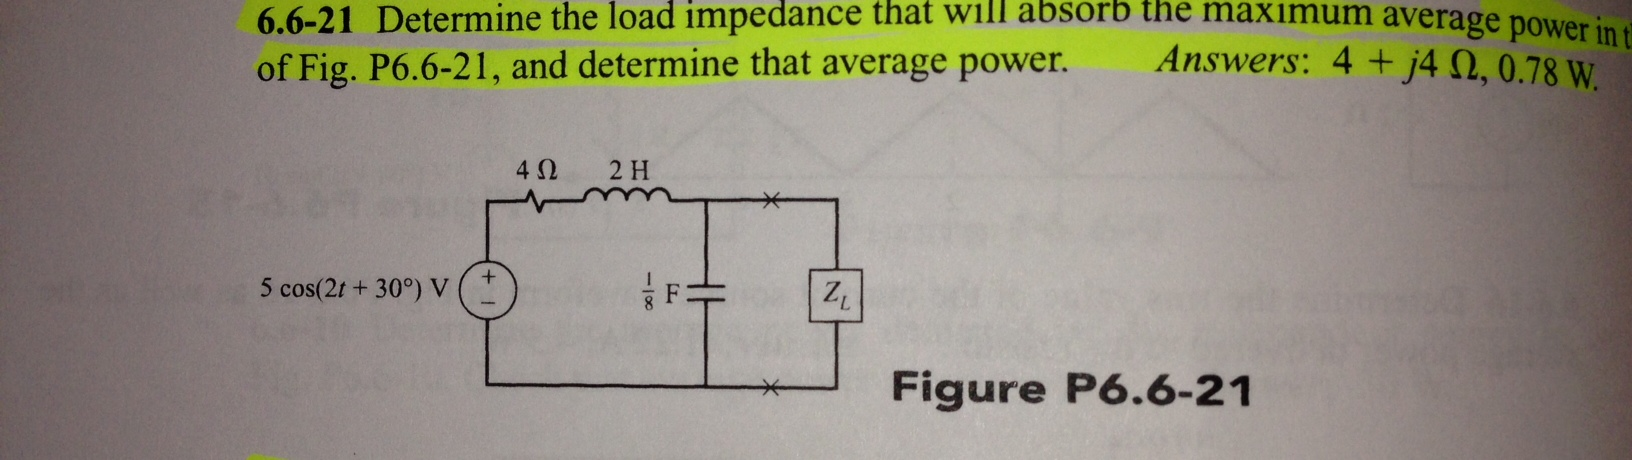 Determine the load impedance that will absorb the